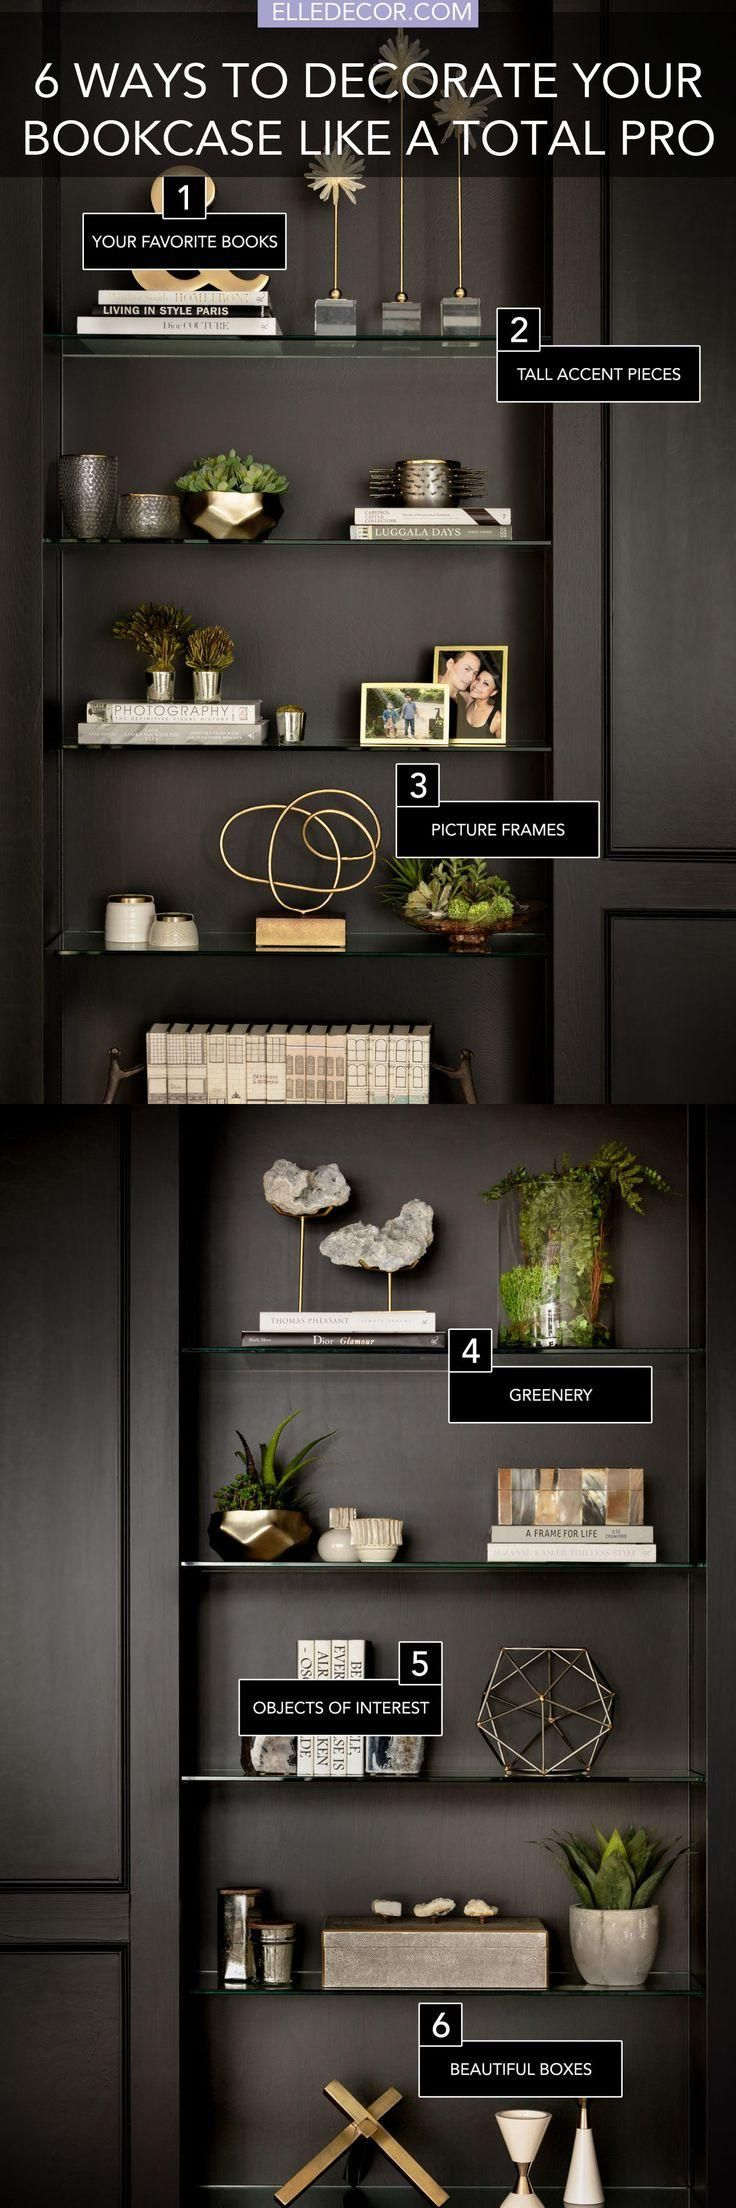 6 secrets to a perfectly styled bookcase the art of display pinterest wohnzimmer regal. Black Bedroom Furniture Sets. Home Design Ideas